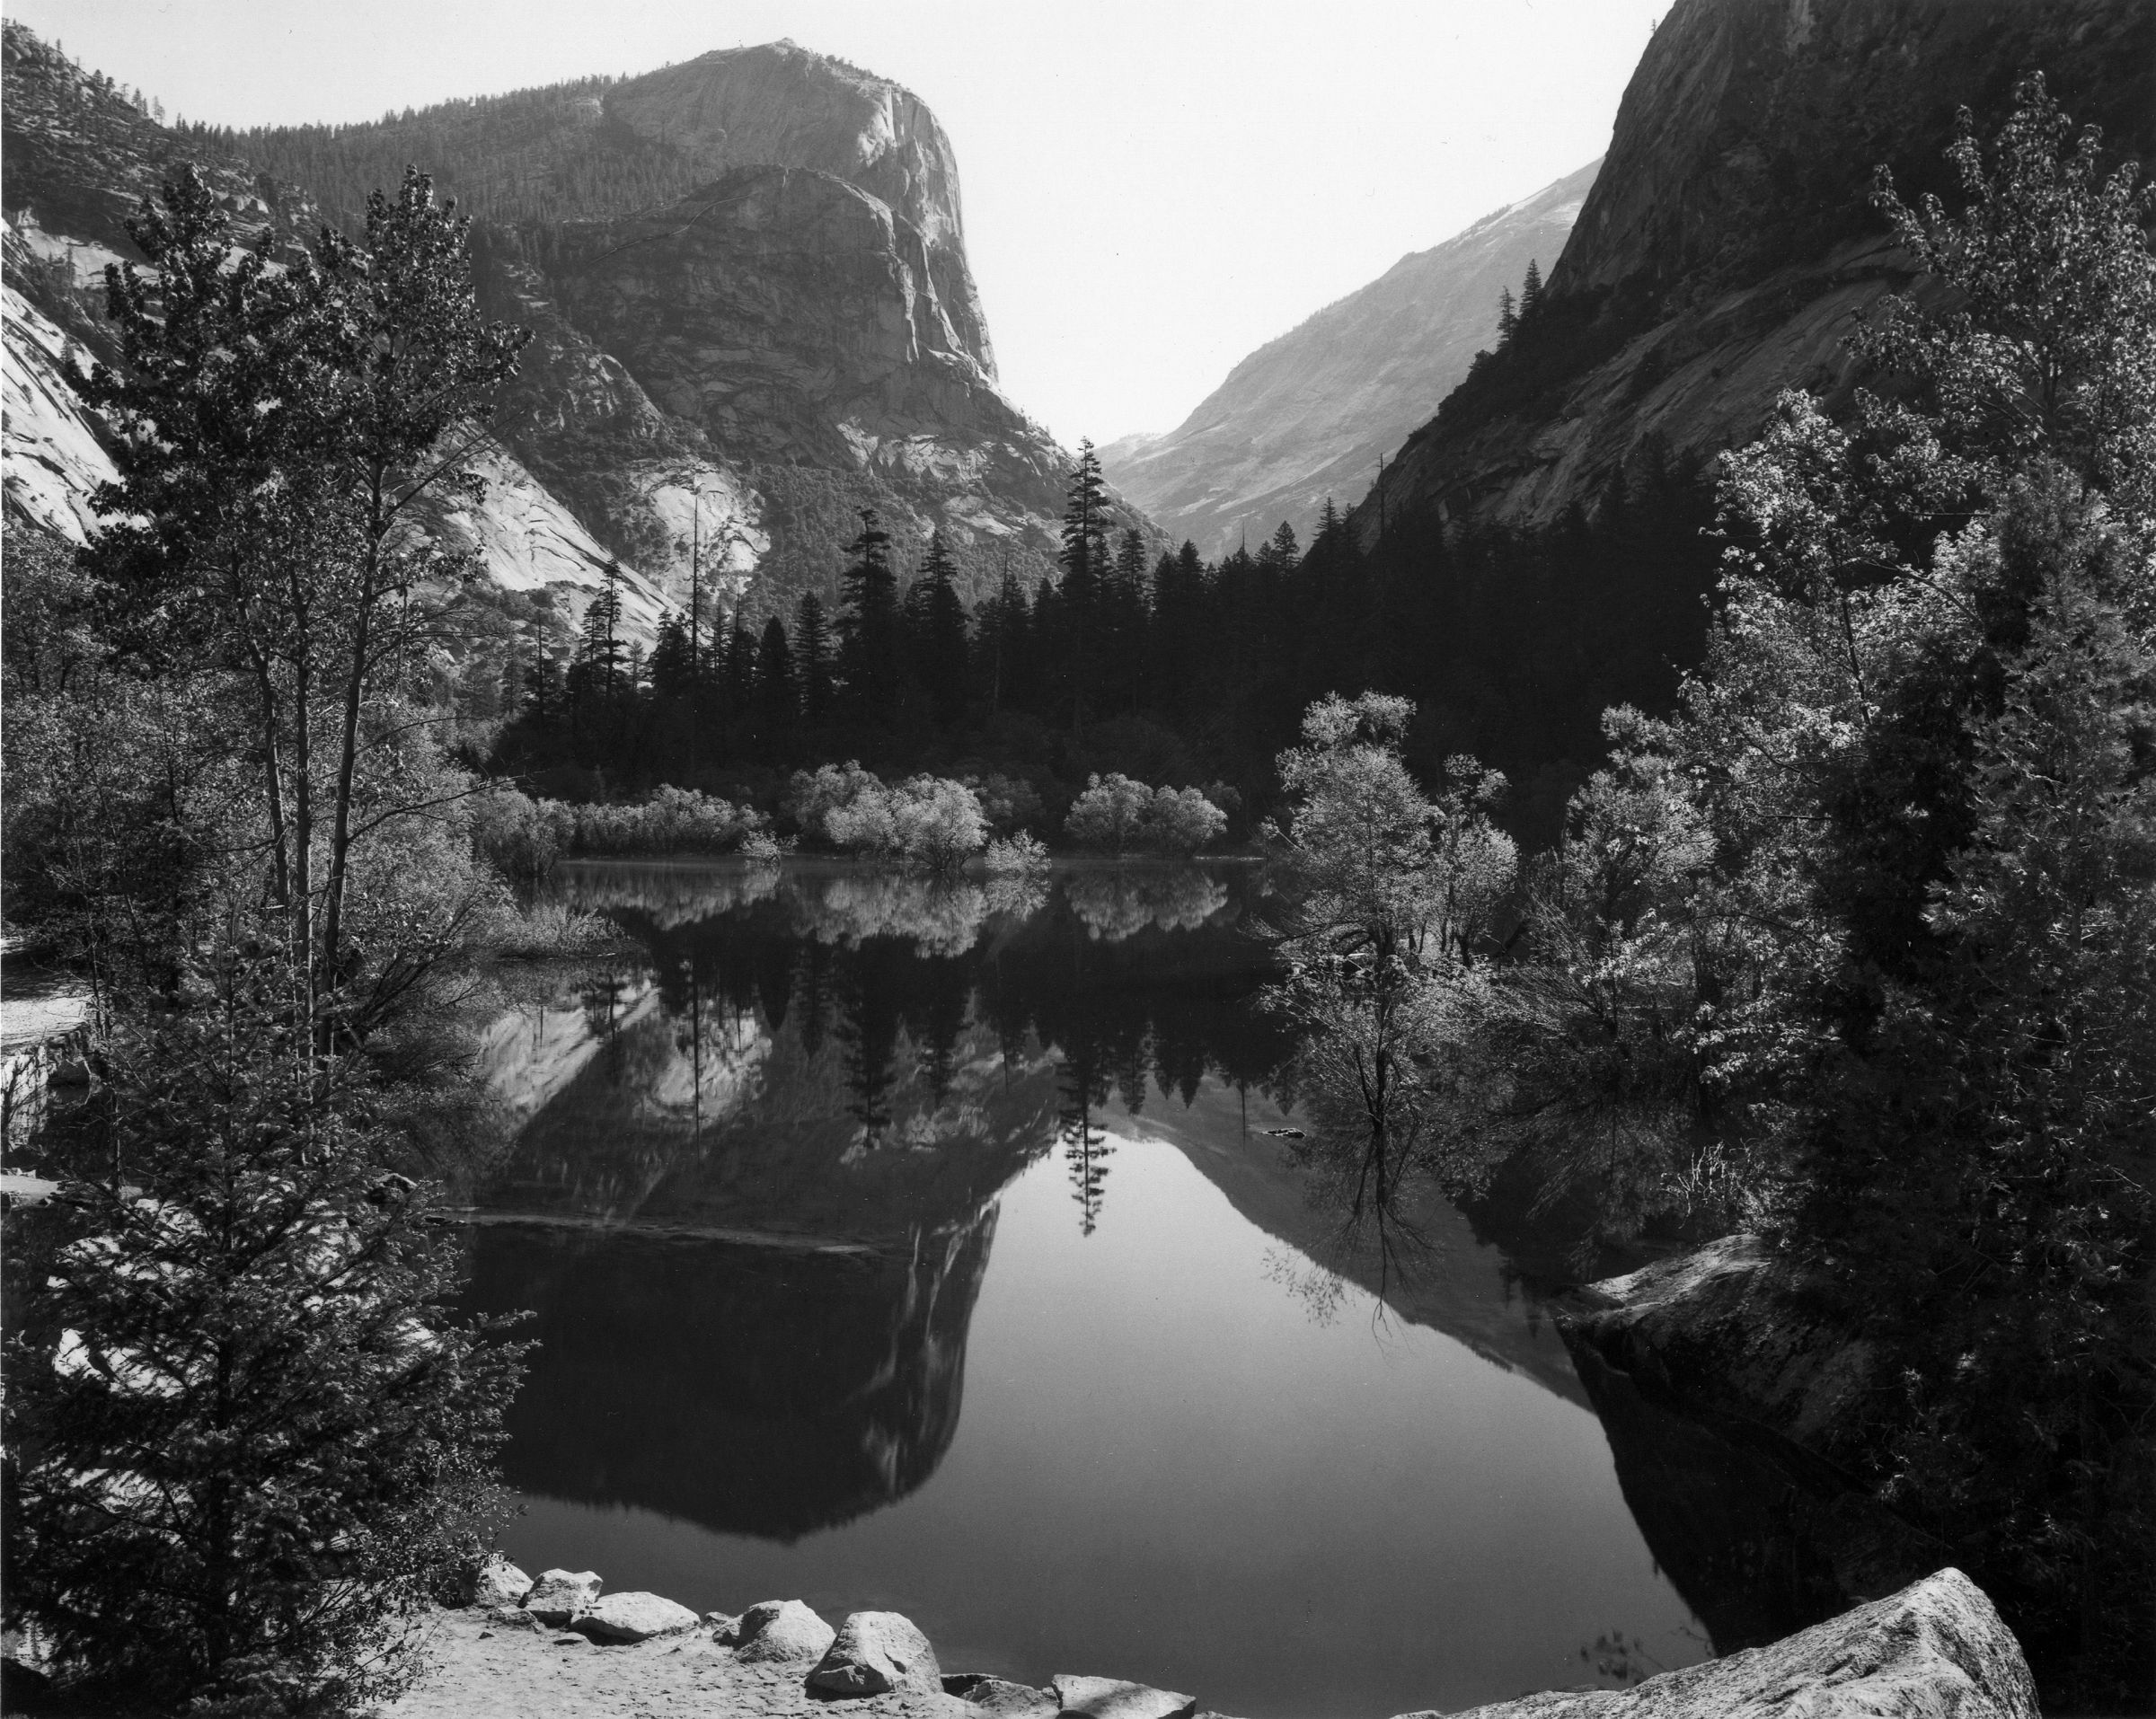 Ansel Adams Wallpaper Pack